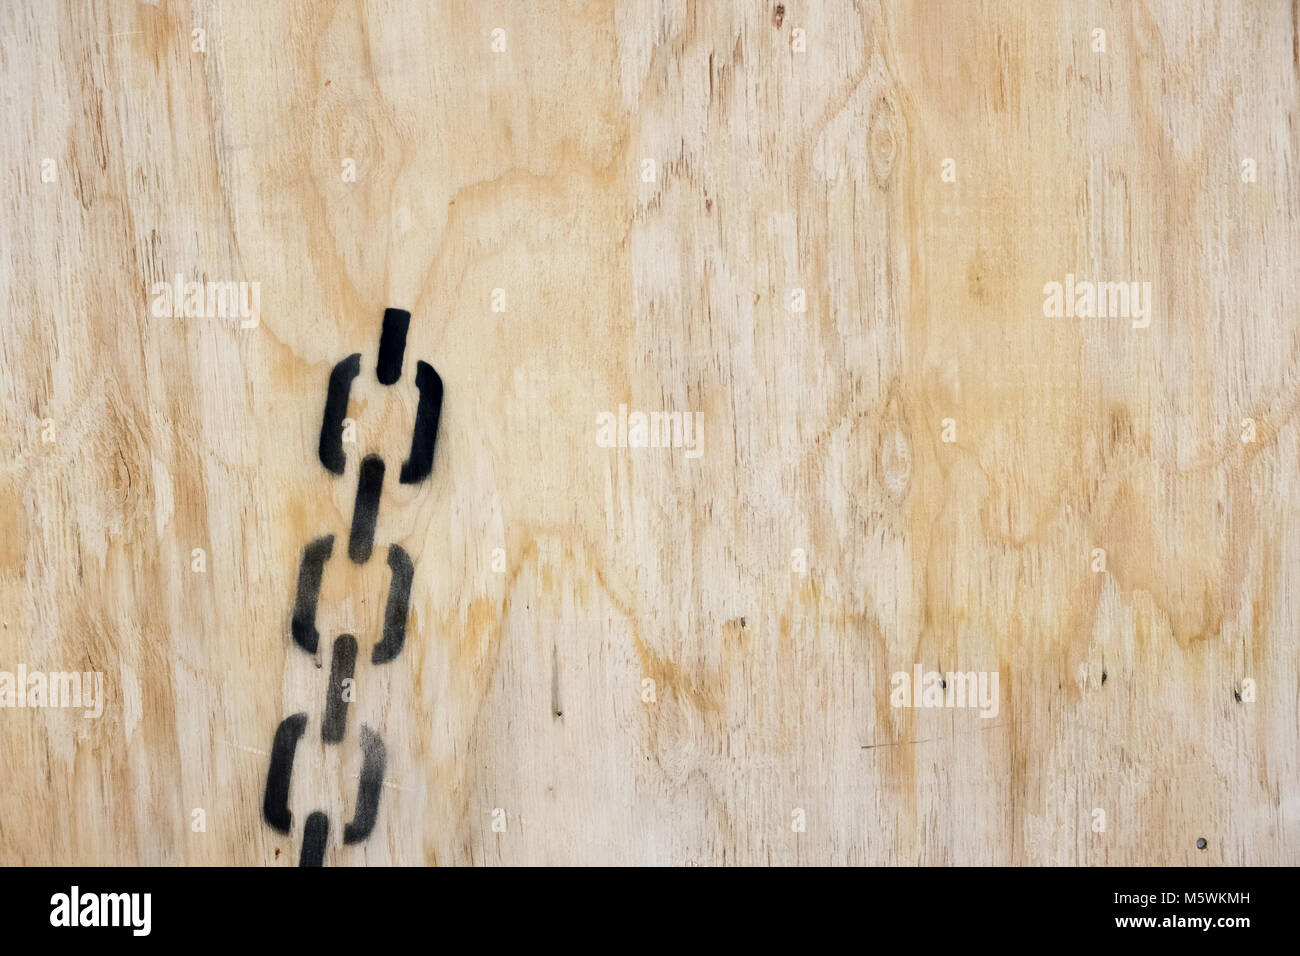 Handle with care symbol stock photos handle with care symbol a wooden packing crate with various packing symbols stock image buycottarizona